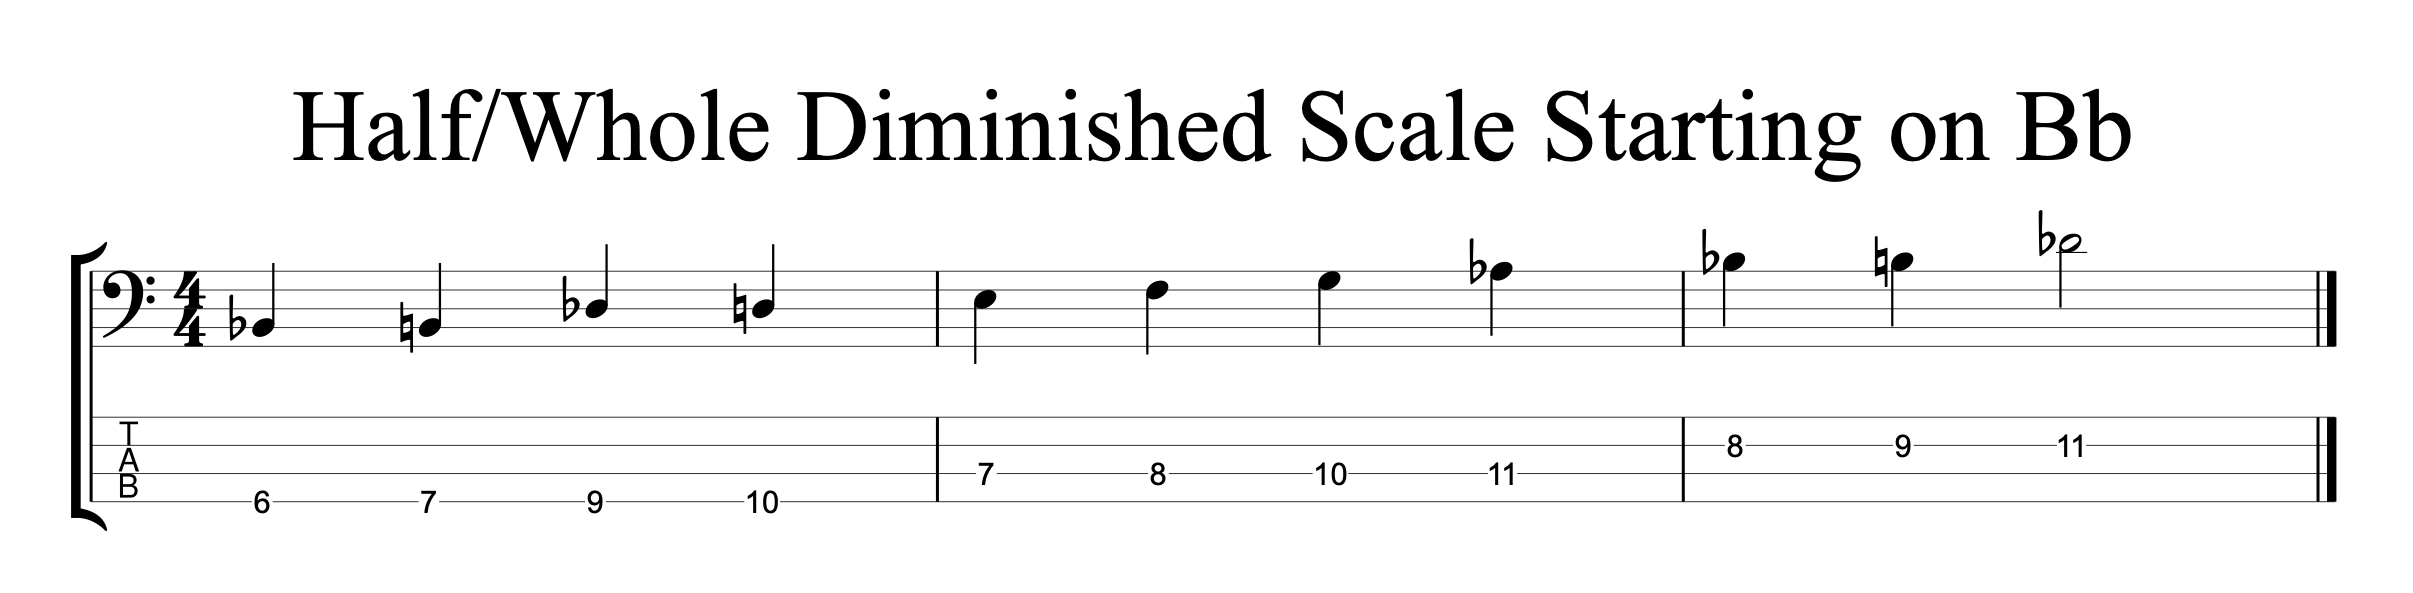 HalfWhole Diminished Scale Starting on Bb